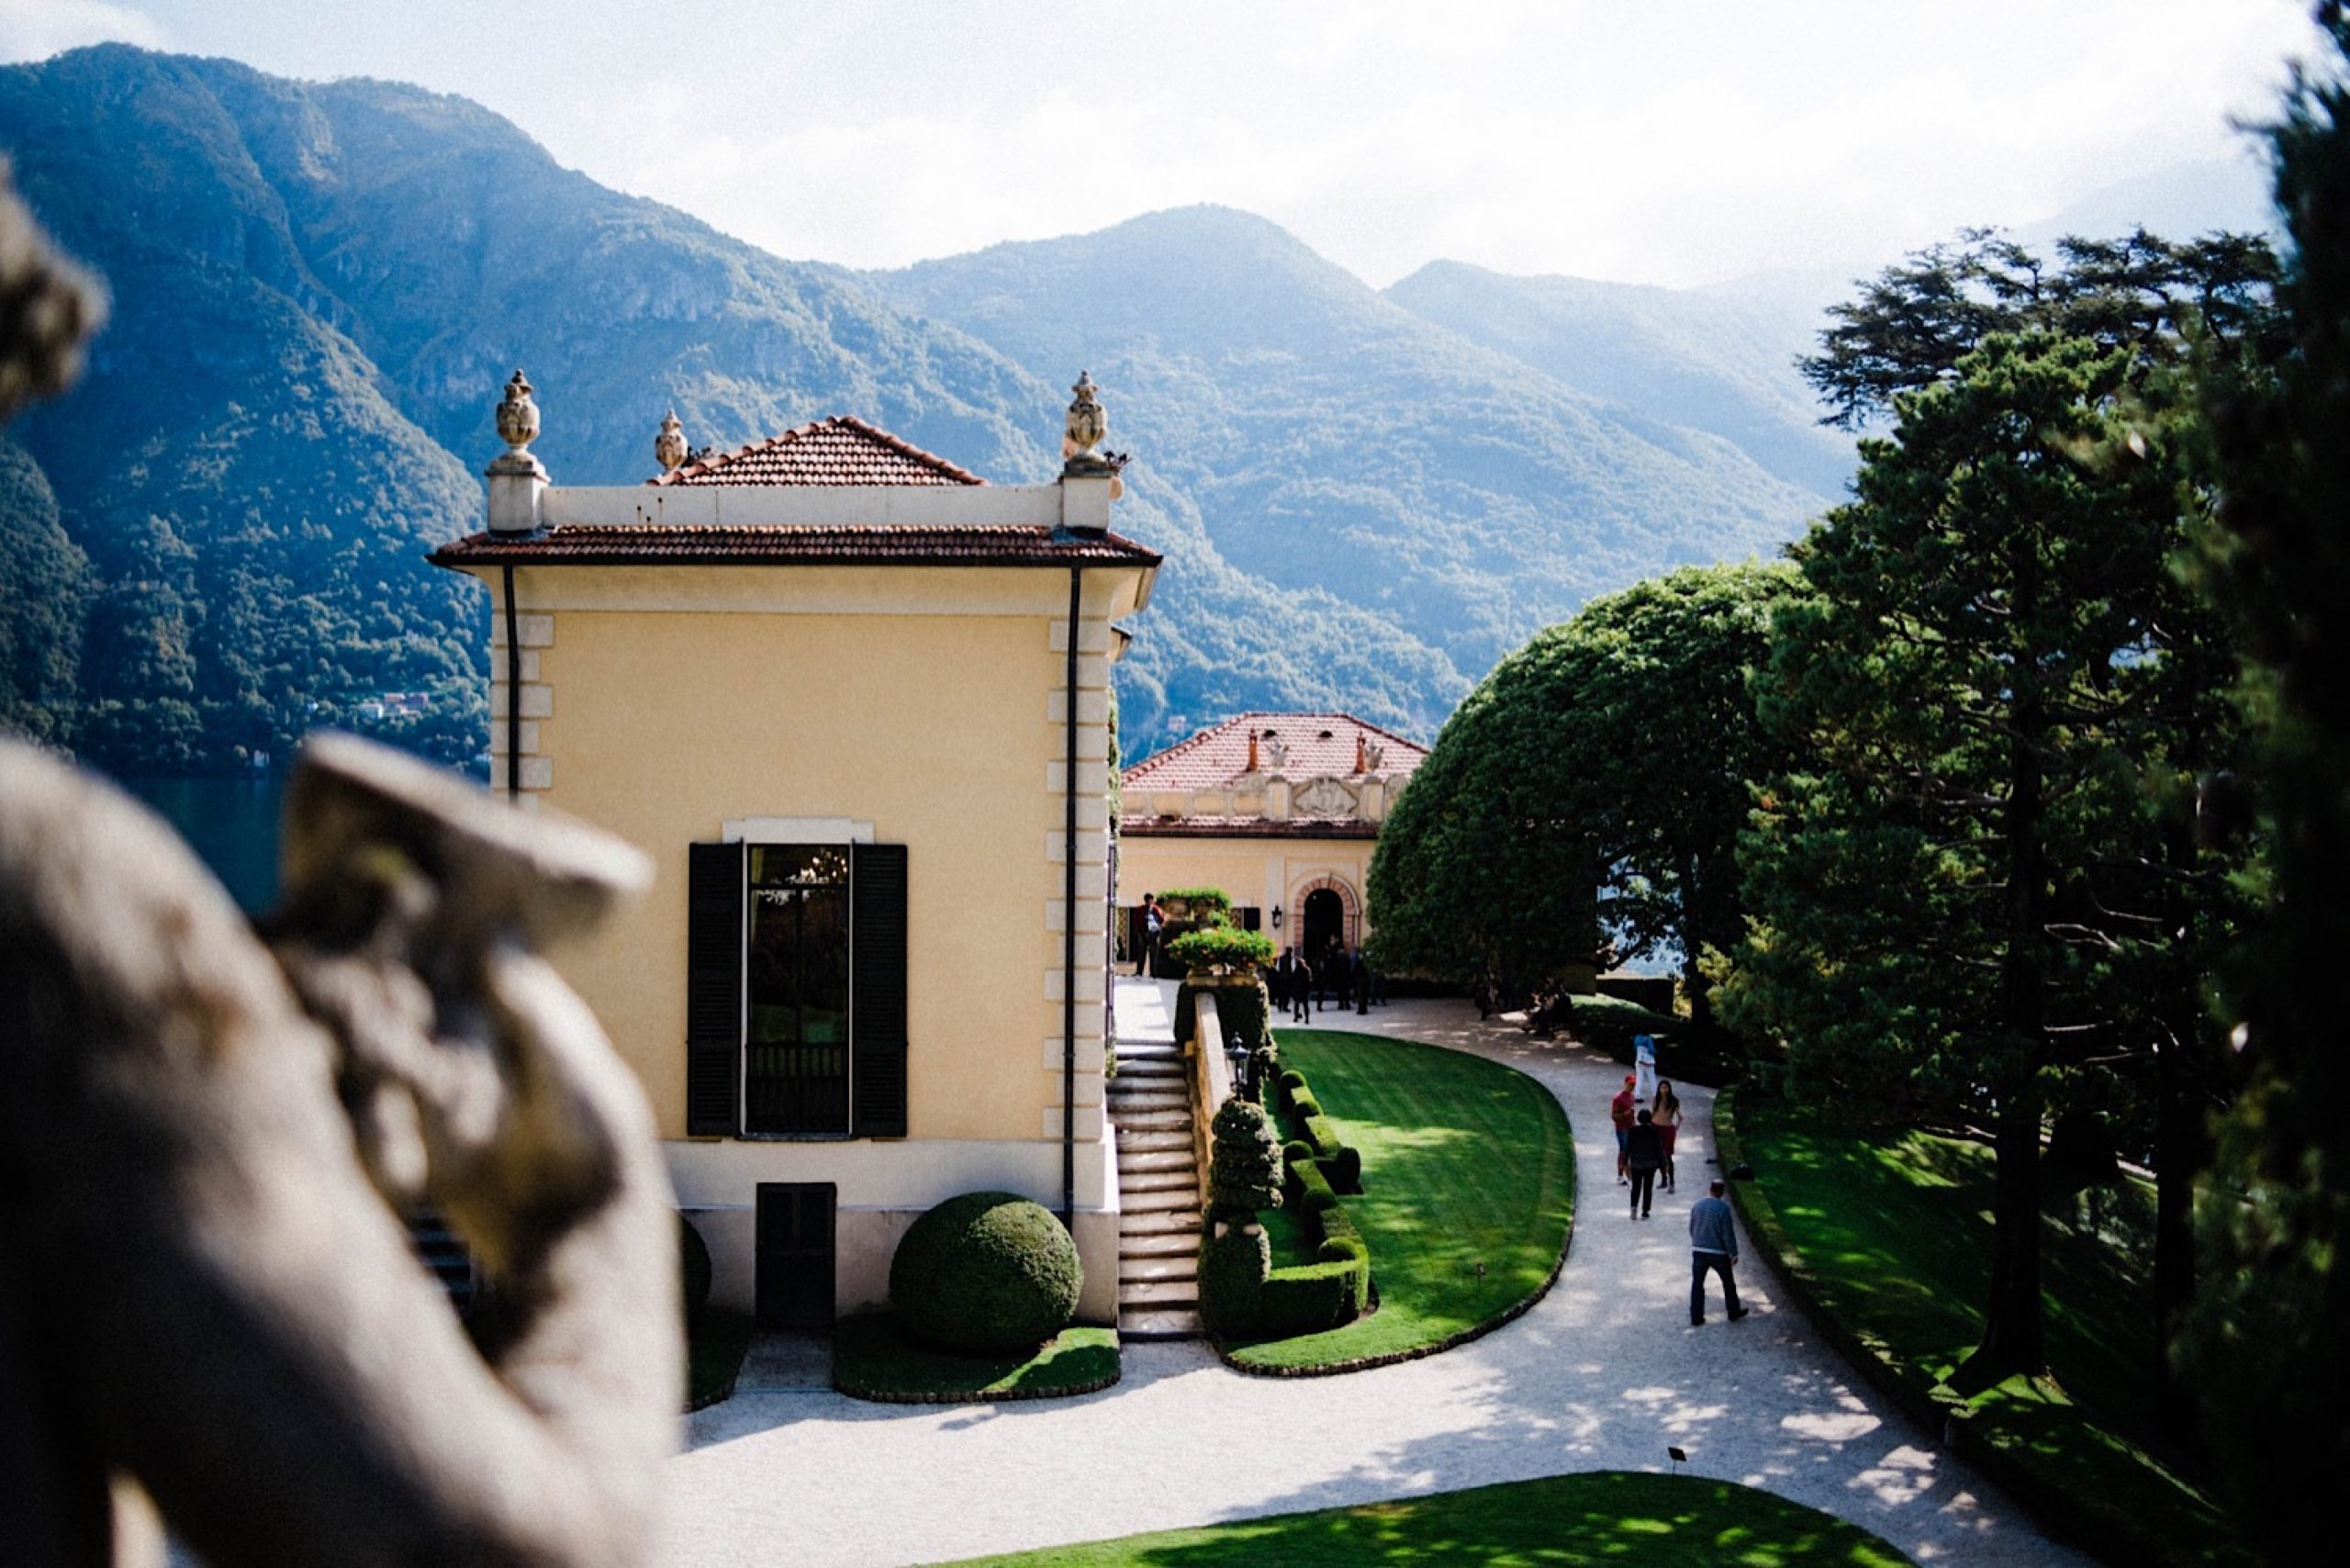 A wide photo showcasing Villa del Balbianello, in Lenno, on Lake Como. On the lower left corner, the details of a statue a blurred out, in the rest of the photo you see the Villa, the surrounding gardens and the mountains in the background.